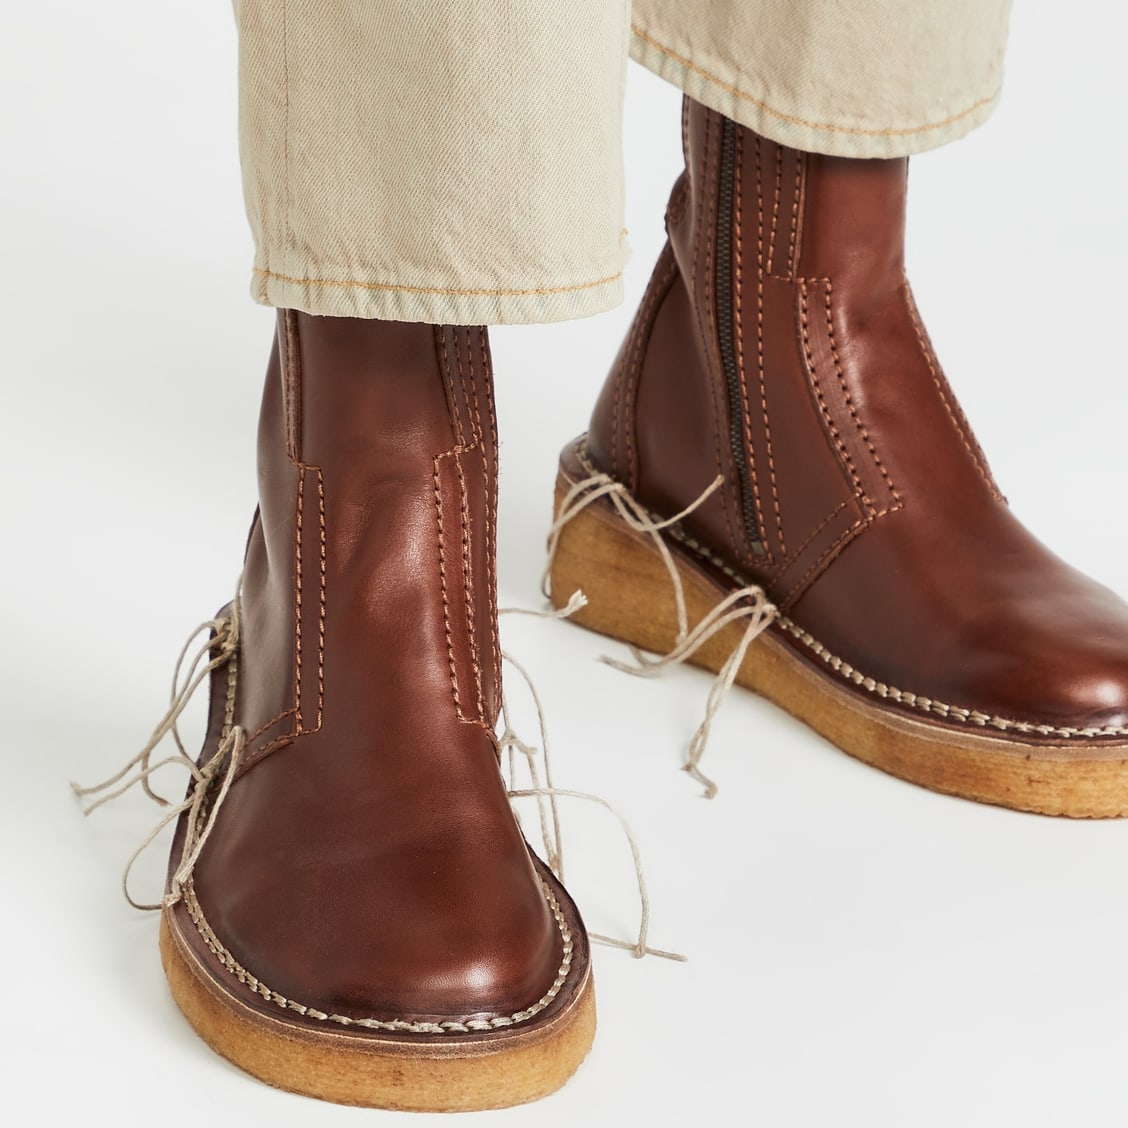 Acne Studios' brown leather Bura boots featuring distressed welt stitching with exaggerated threads